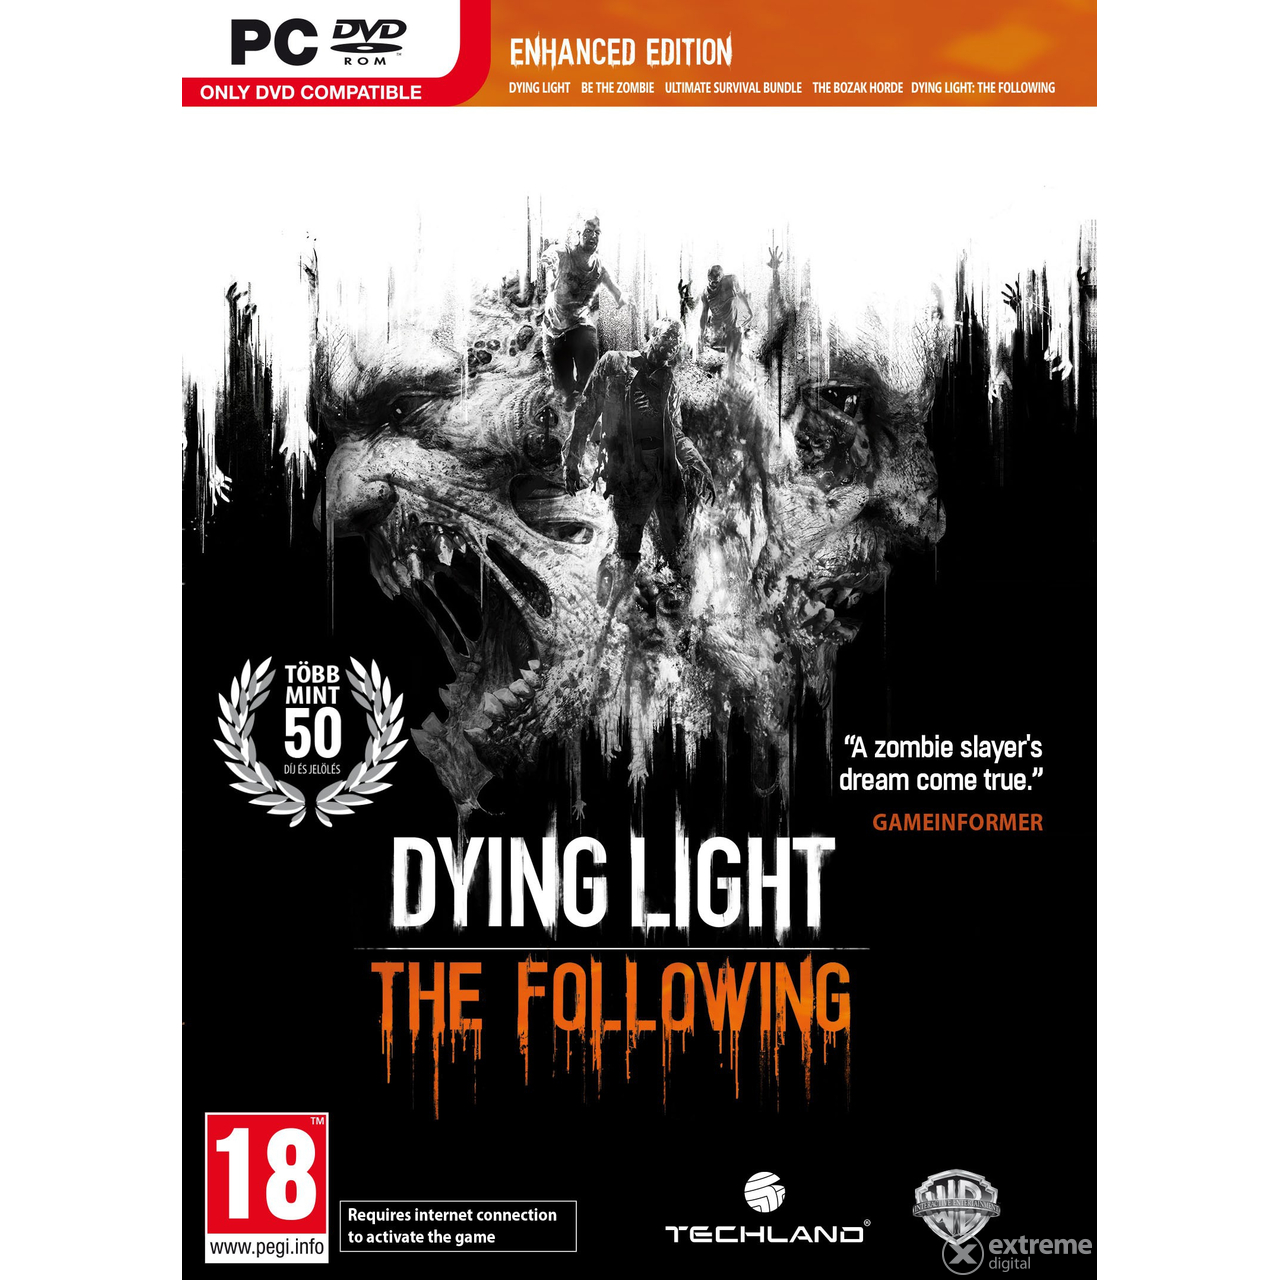 dying-light-the-following-enhanced-edition-pc-jatekszoftver_d4c21280.jpg